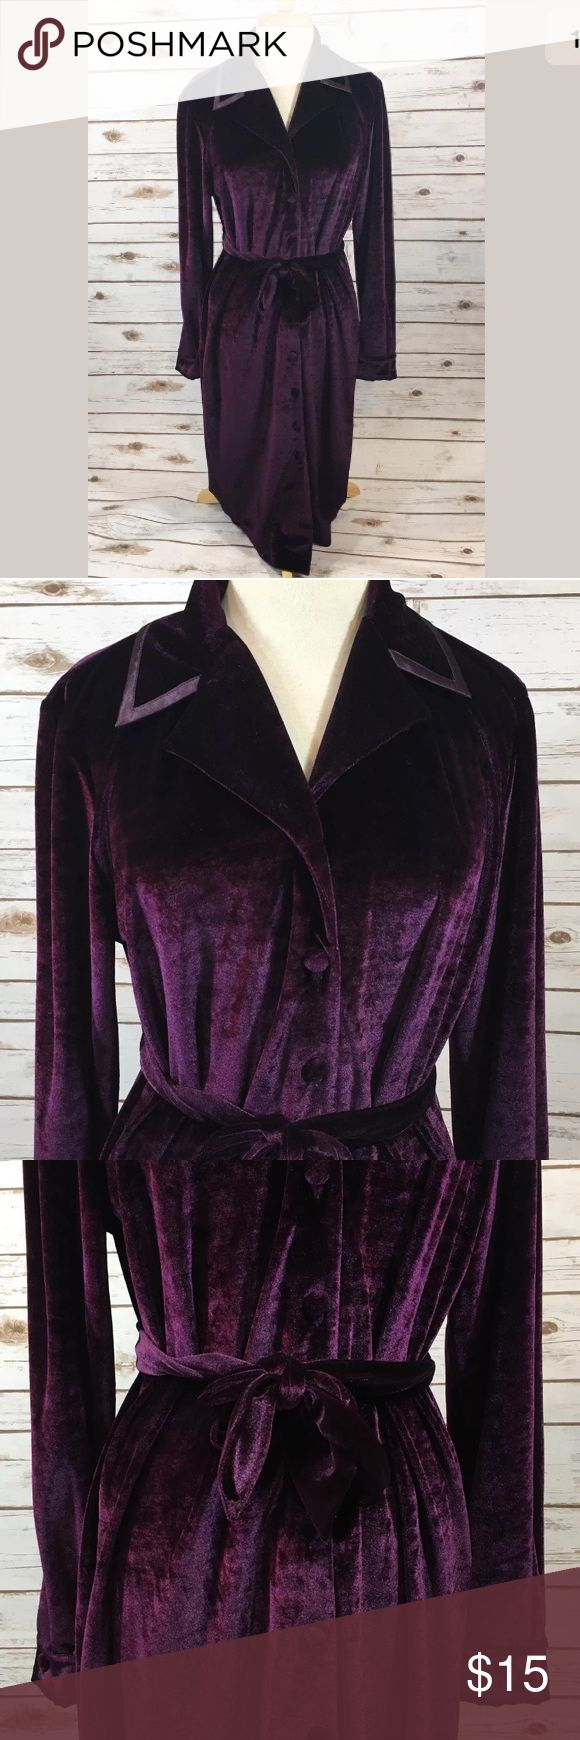 "Vintage 90s Purple Velour Dress Vintage 1990s Together! brand dark purple velour button-front belted long sleeve dress. Dress is unlined.  Labeled a size 10. All brands are sized differently. Please review measurements to ensure a proper fit.   Bust: 42"" Hip: 42"" Length: 45"" Sleeve: 24.5"" from shoulder seam to end of sleeve  Excellent preowned condition, no flaws to note. Vintage Dresses Midi"